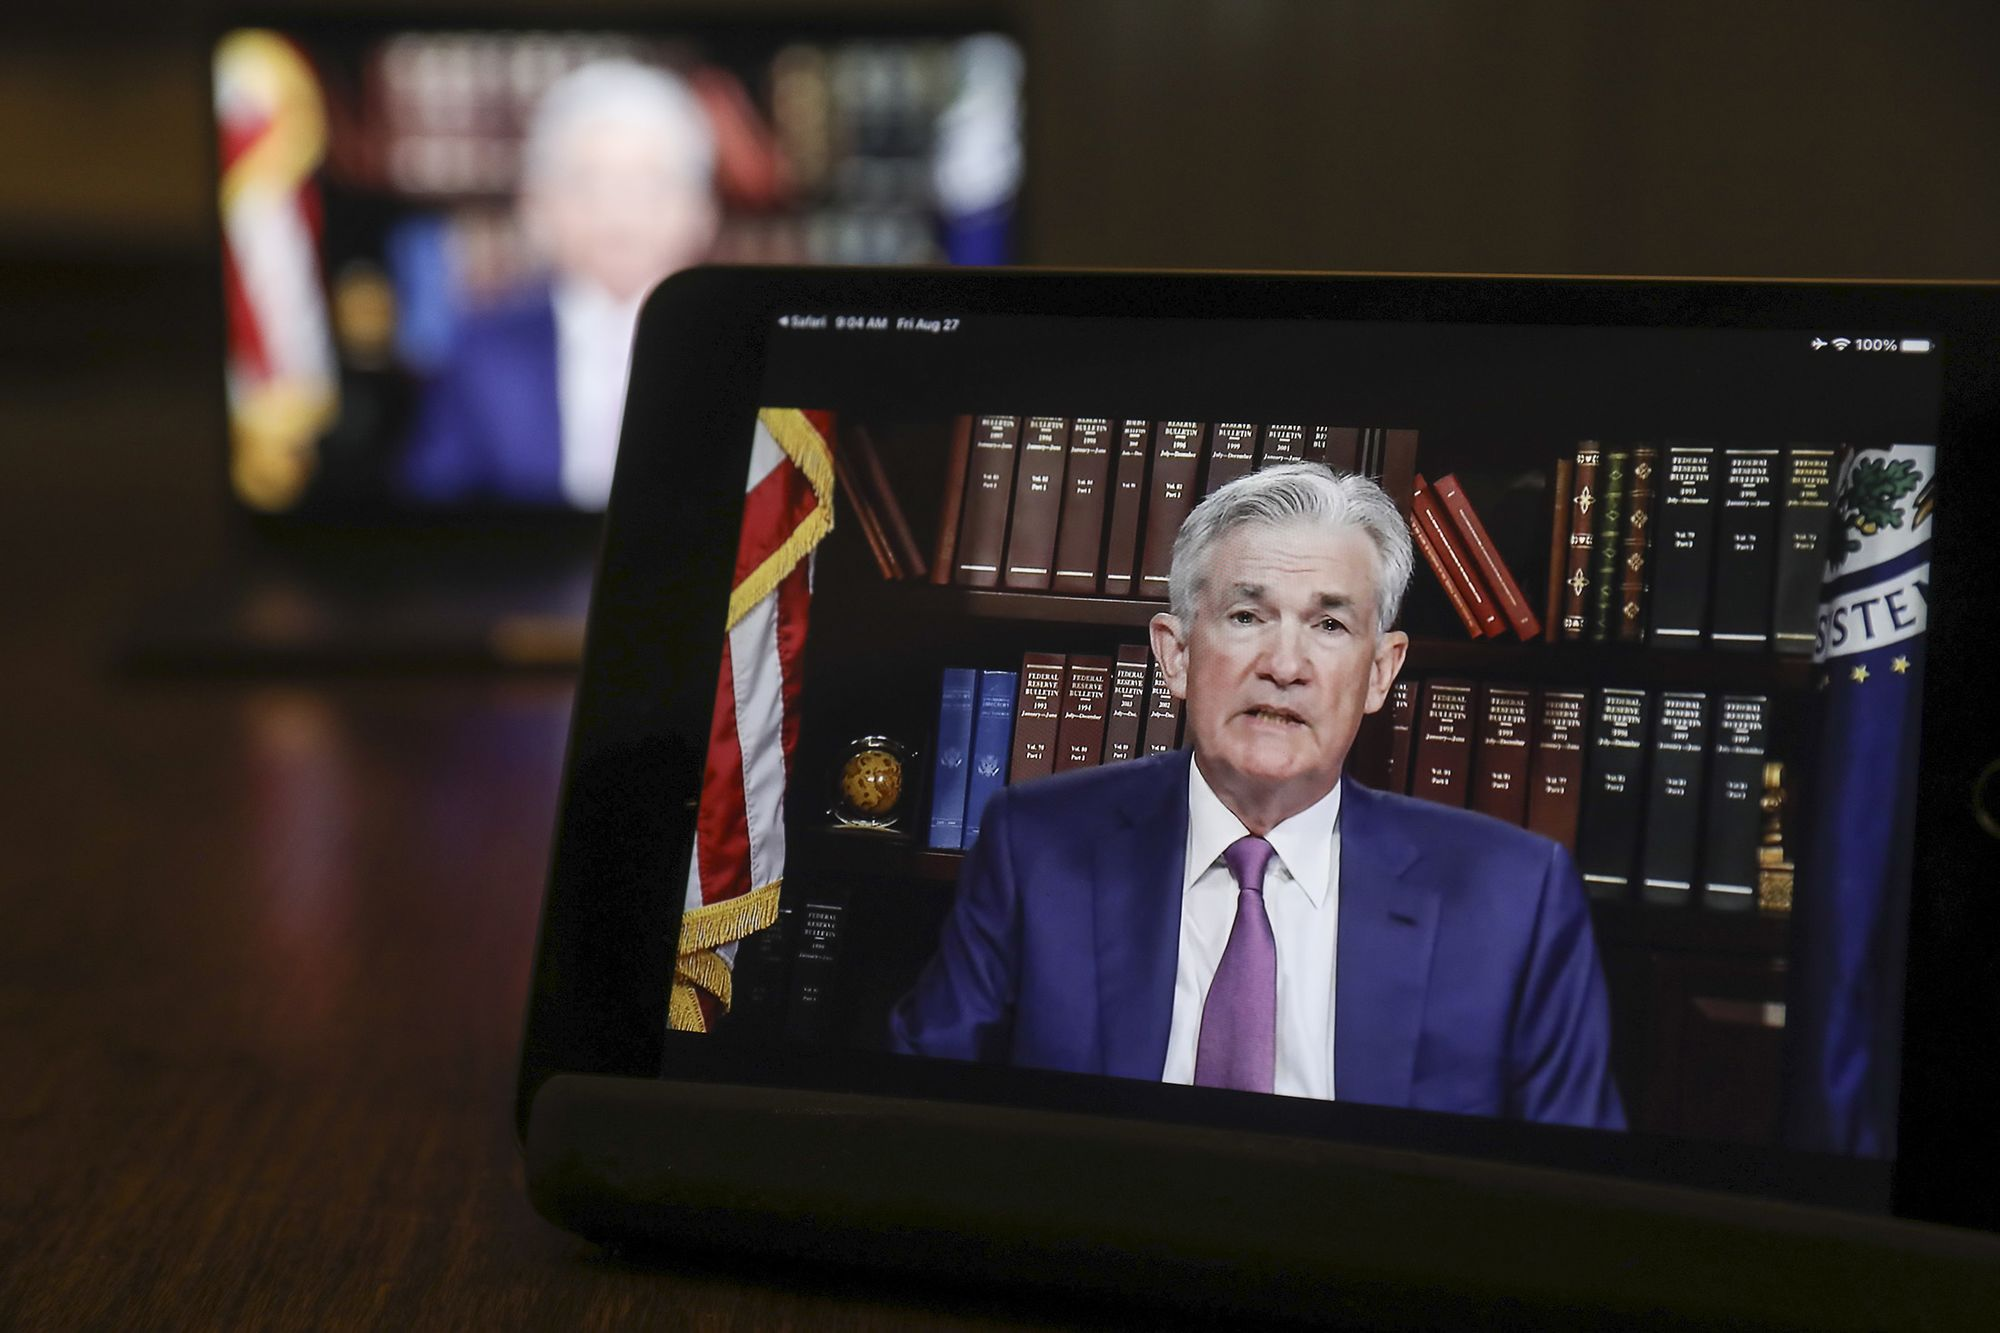 Powell's dovish Jackson Hole speech soothed markets but risks being out of touch with economic reality.